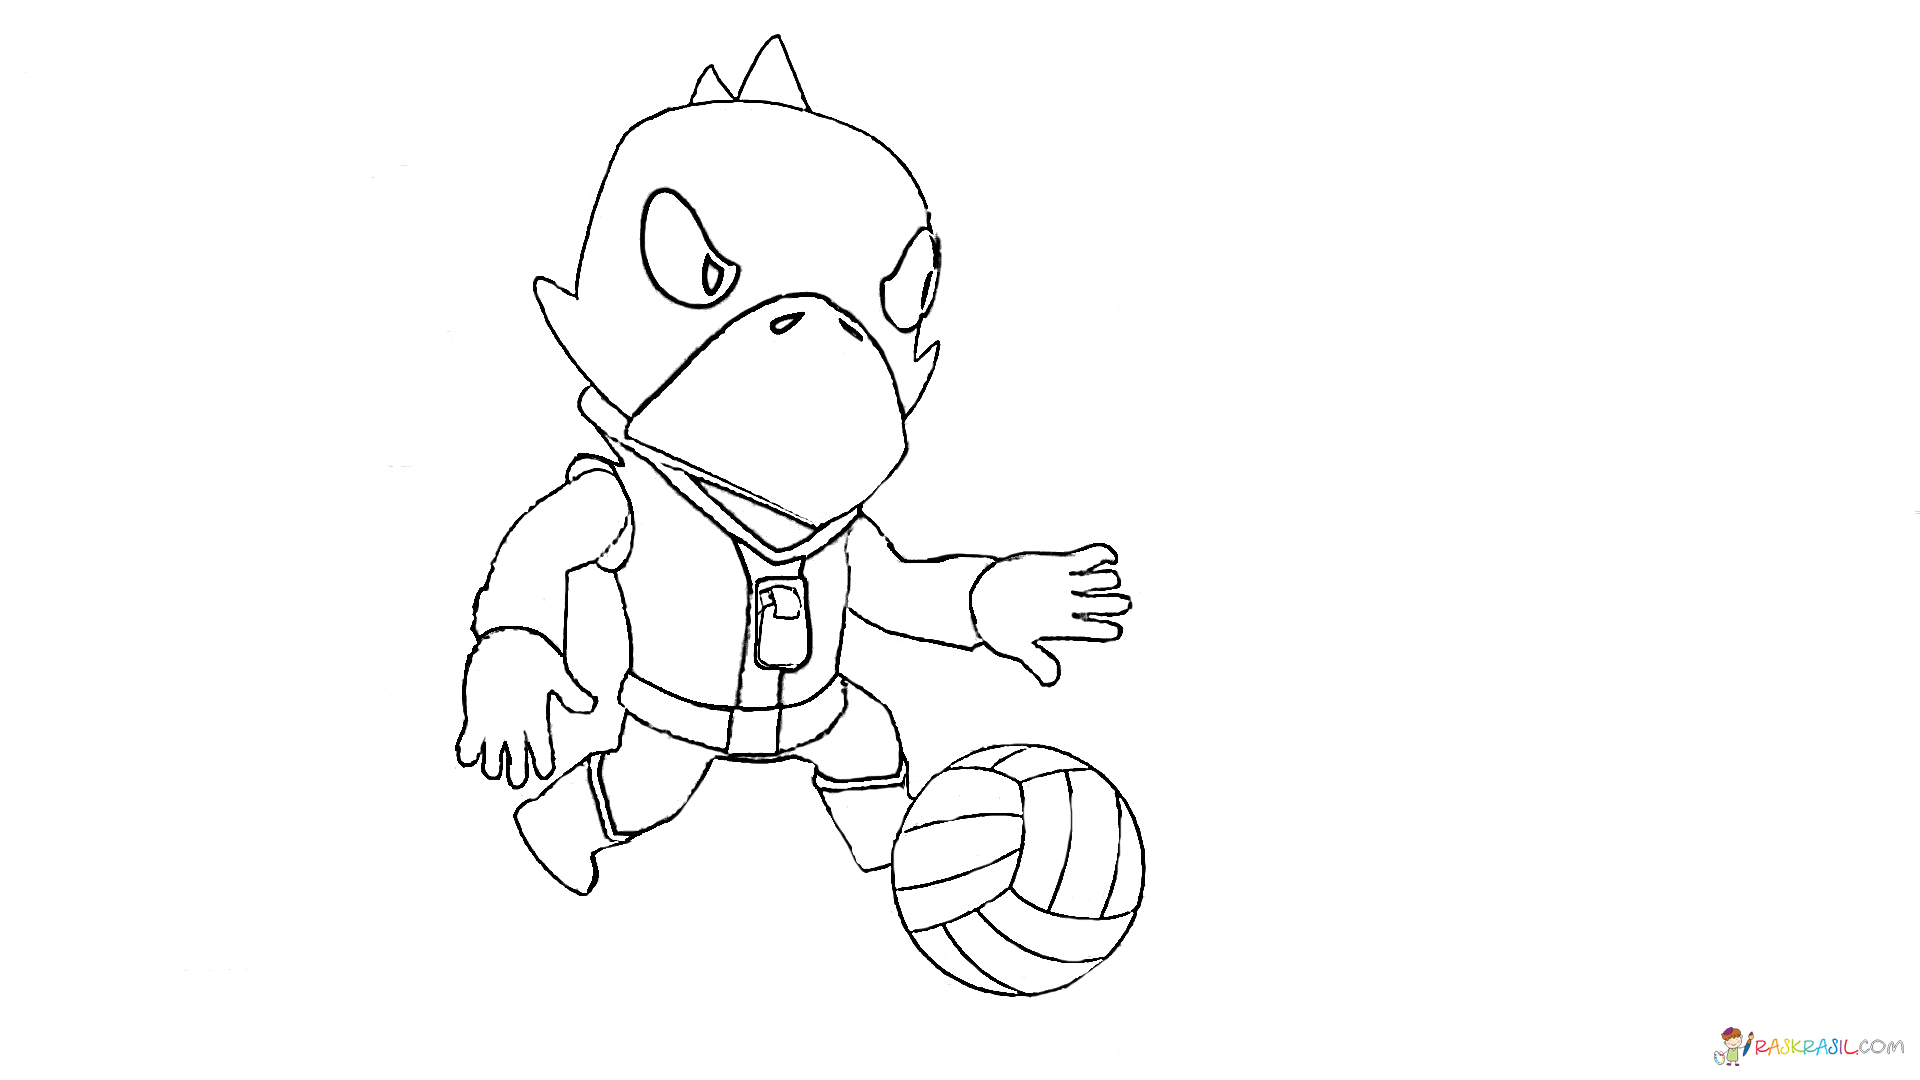 Coloring pages Crow. Print Brawl Stars Hero online